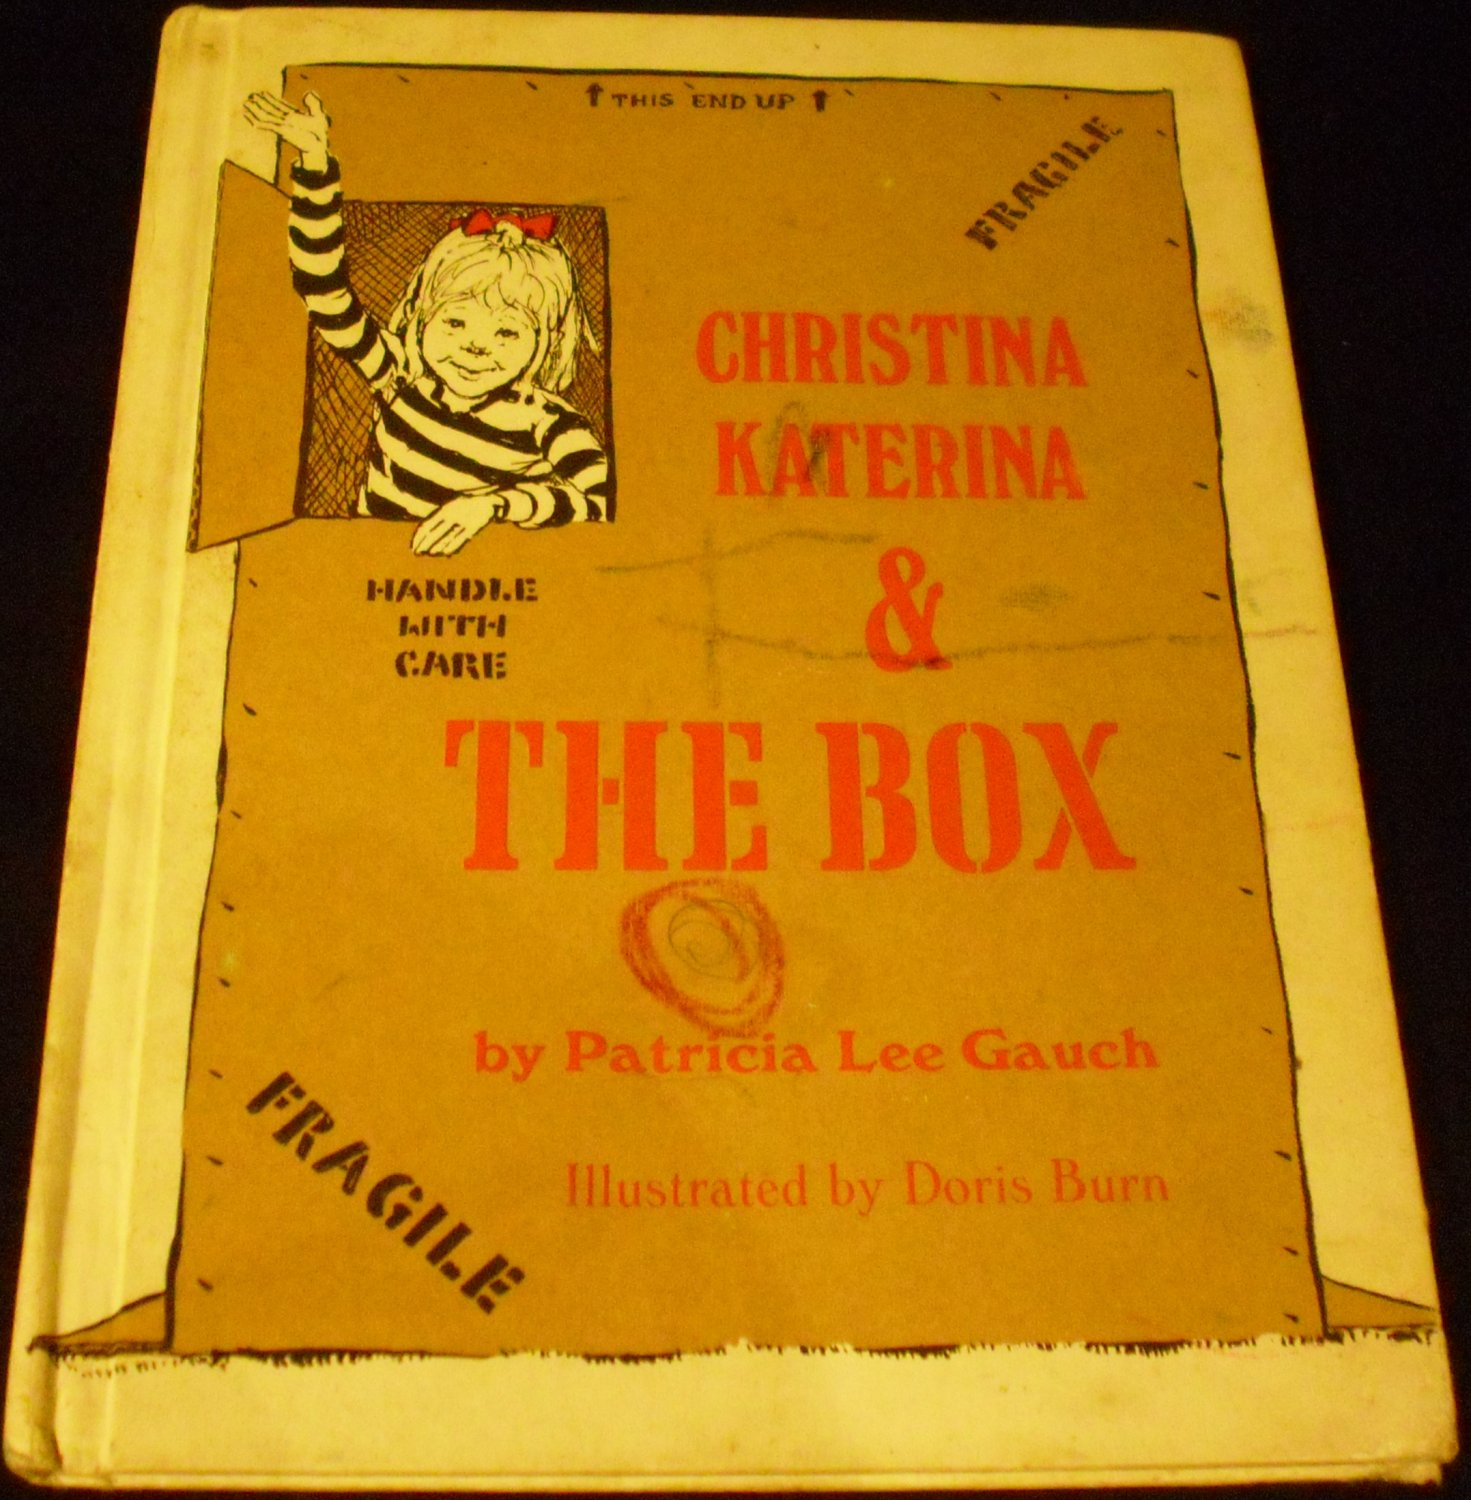 Christina Katerina & the Box by Patricia Lee Gauch (Hardcover - 1971)